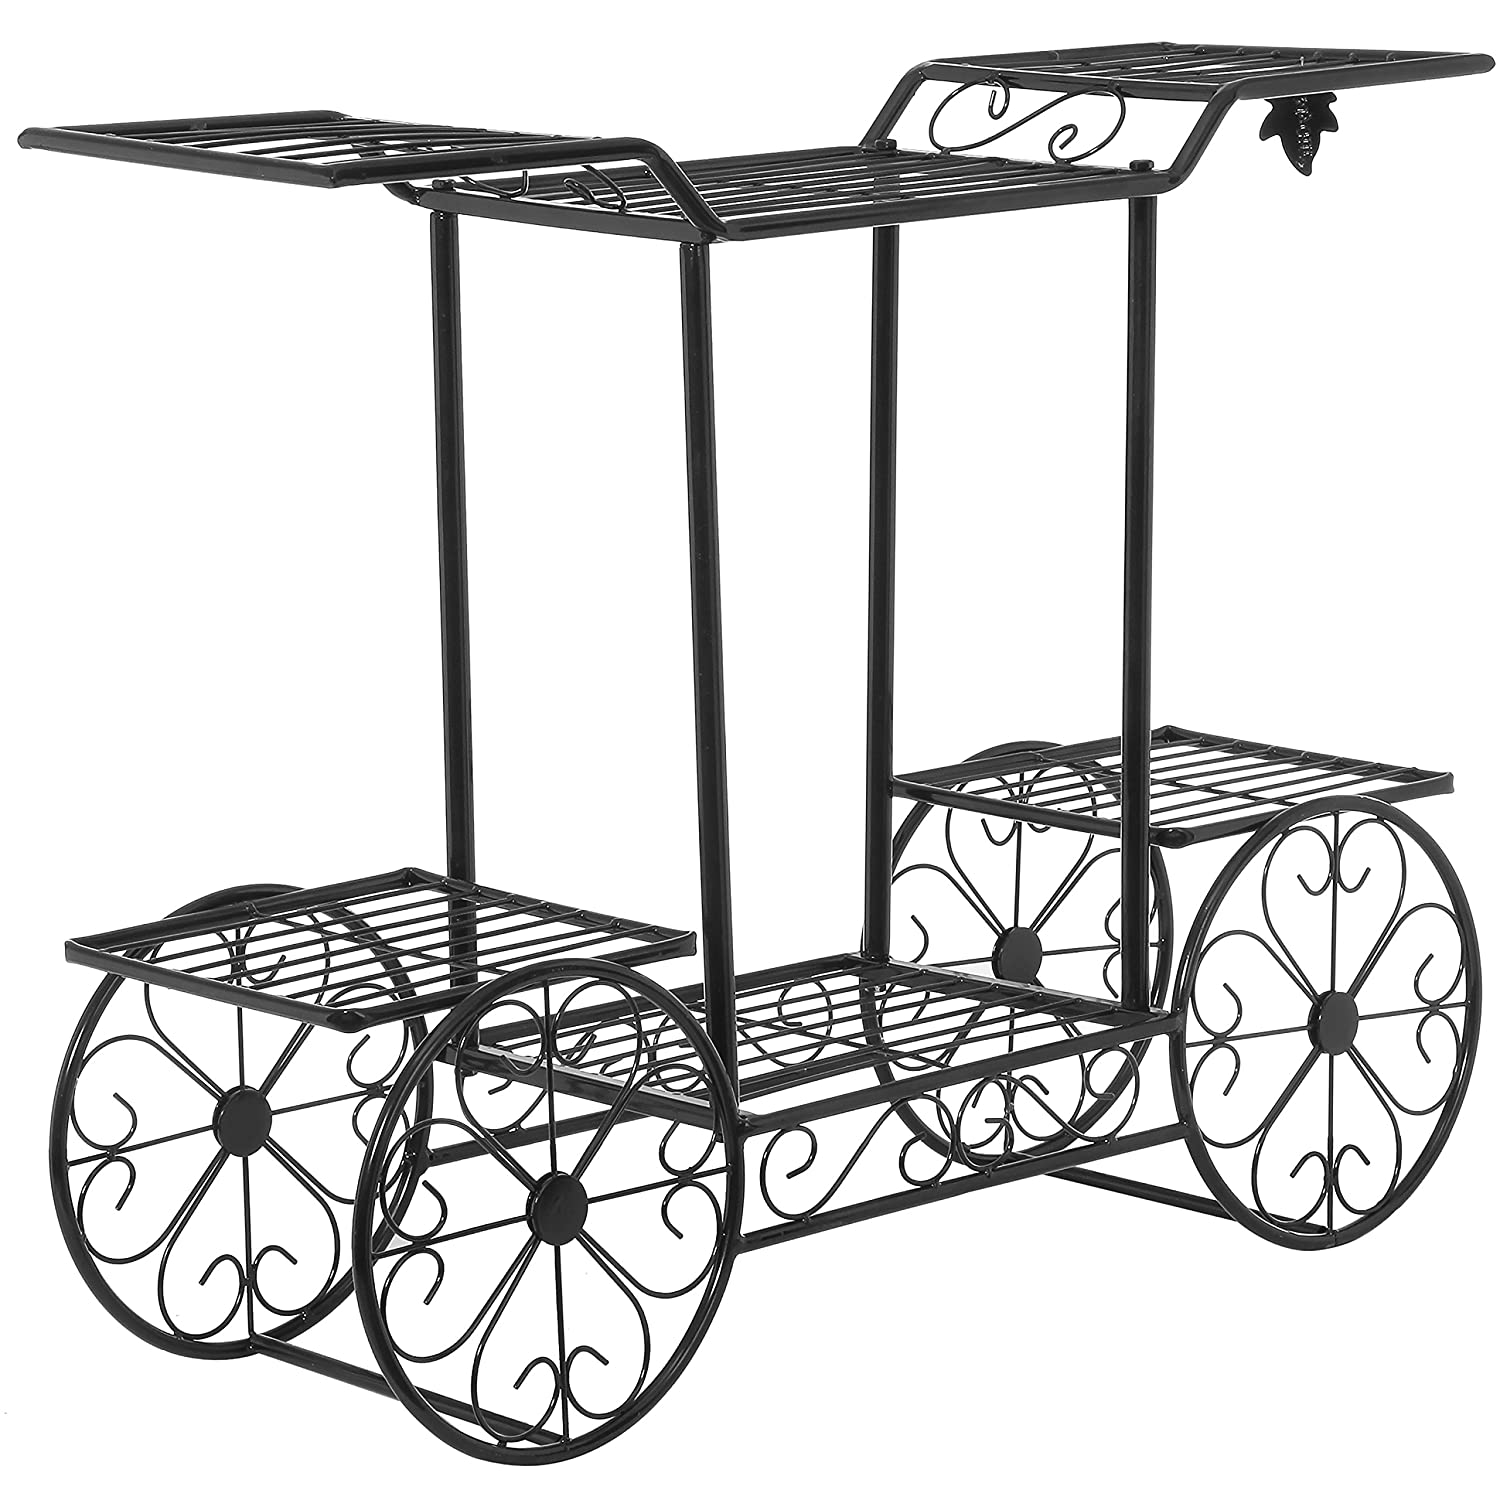 Elegant Cart Design 6 Tier Black Metal Planter Flower Pot